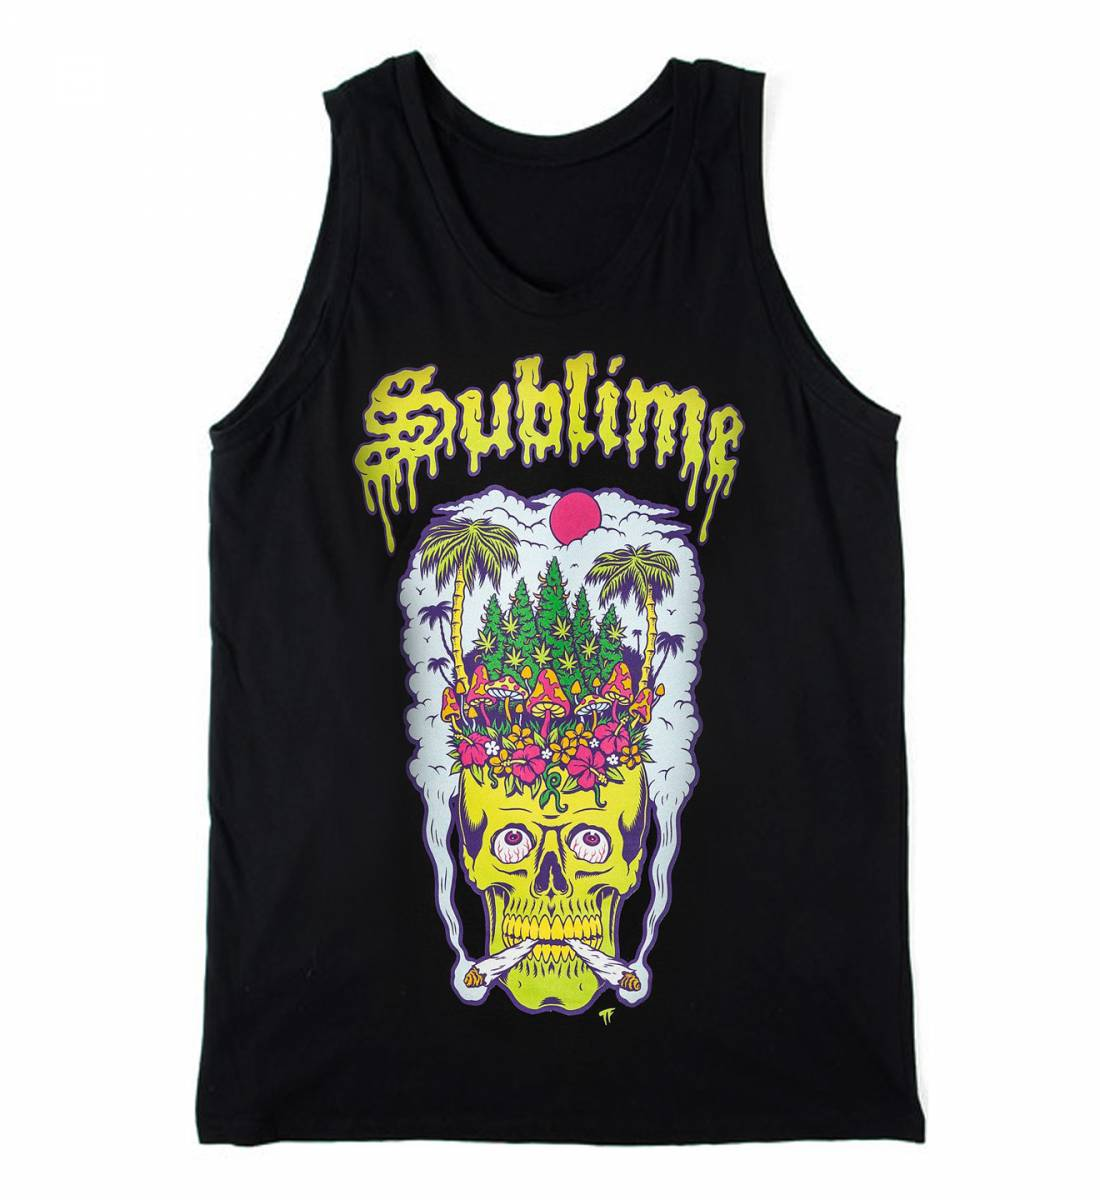 SUBLIME×SULLEN HEAD HIGH STANDARD TANKTOP